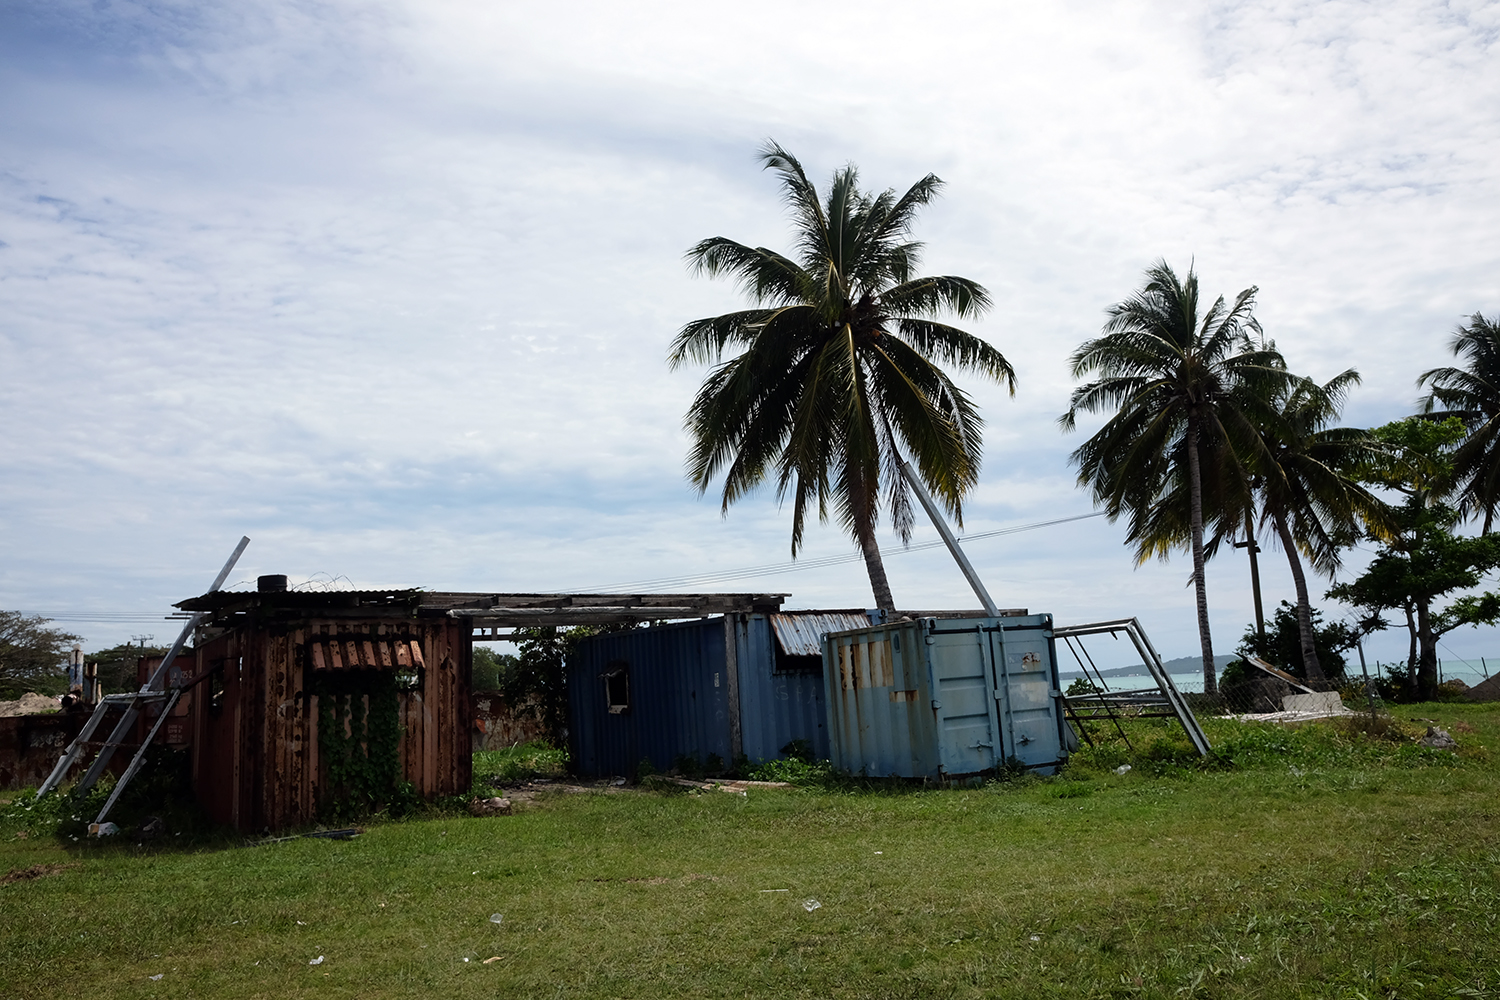 Containers at the Mulifanua Wharf in Upolu